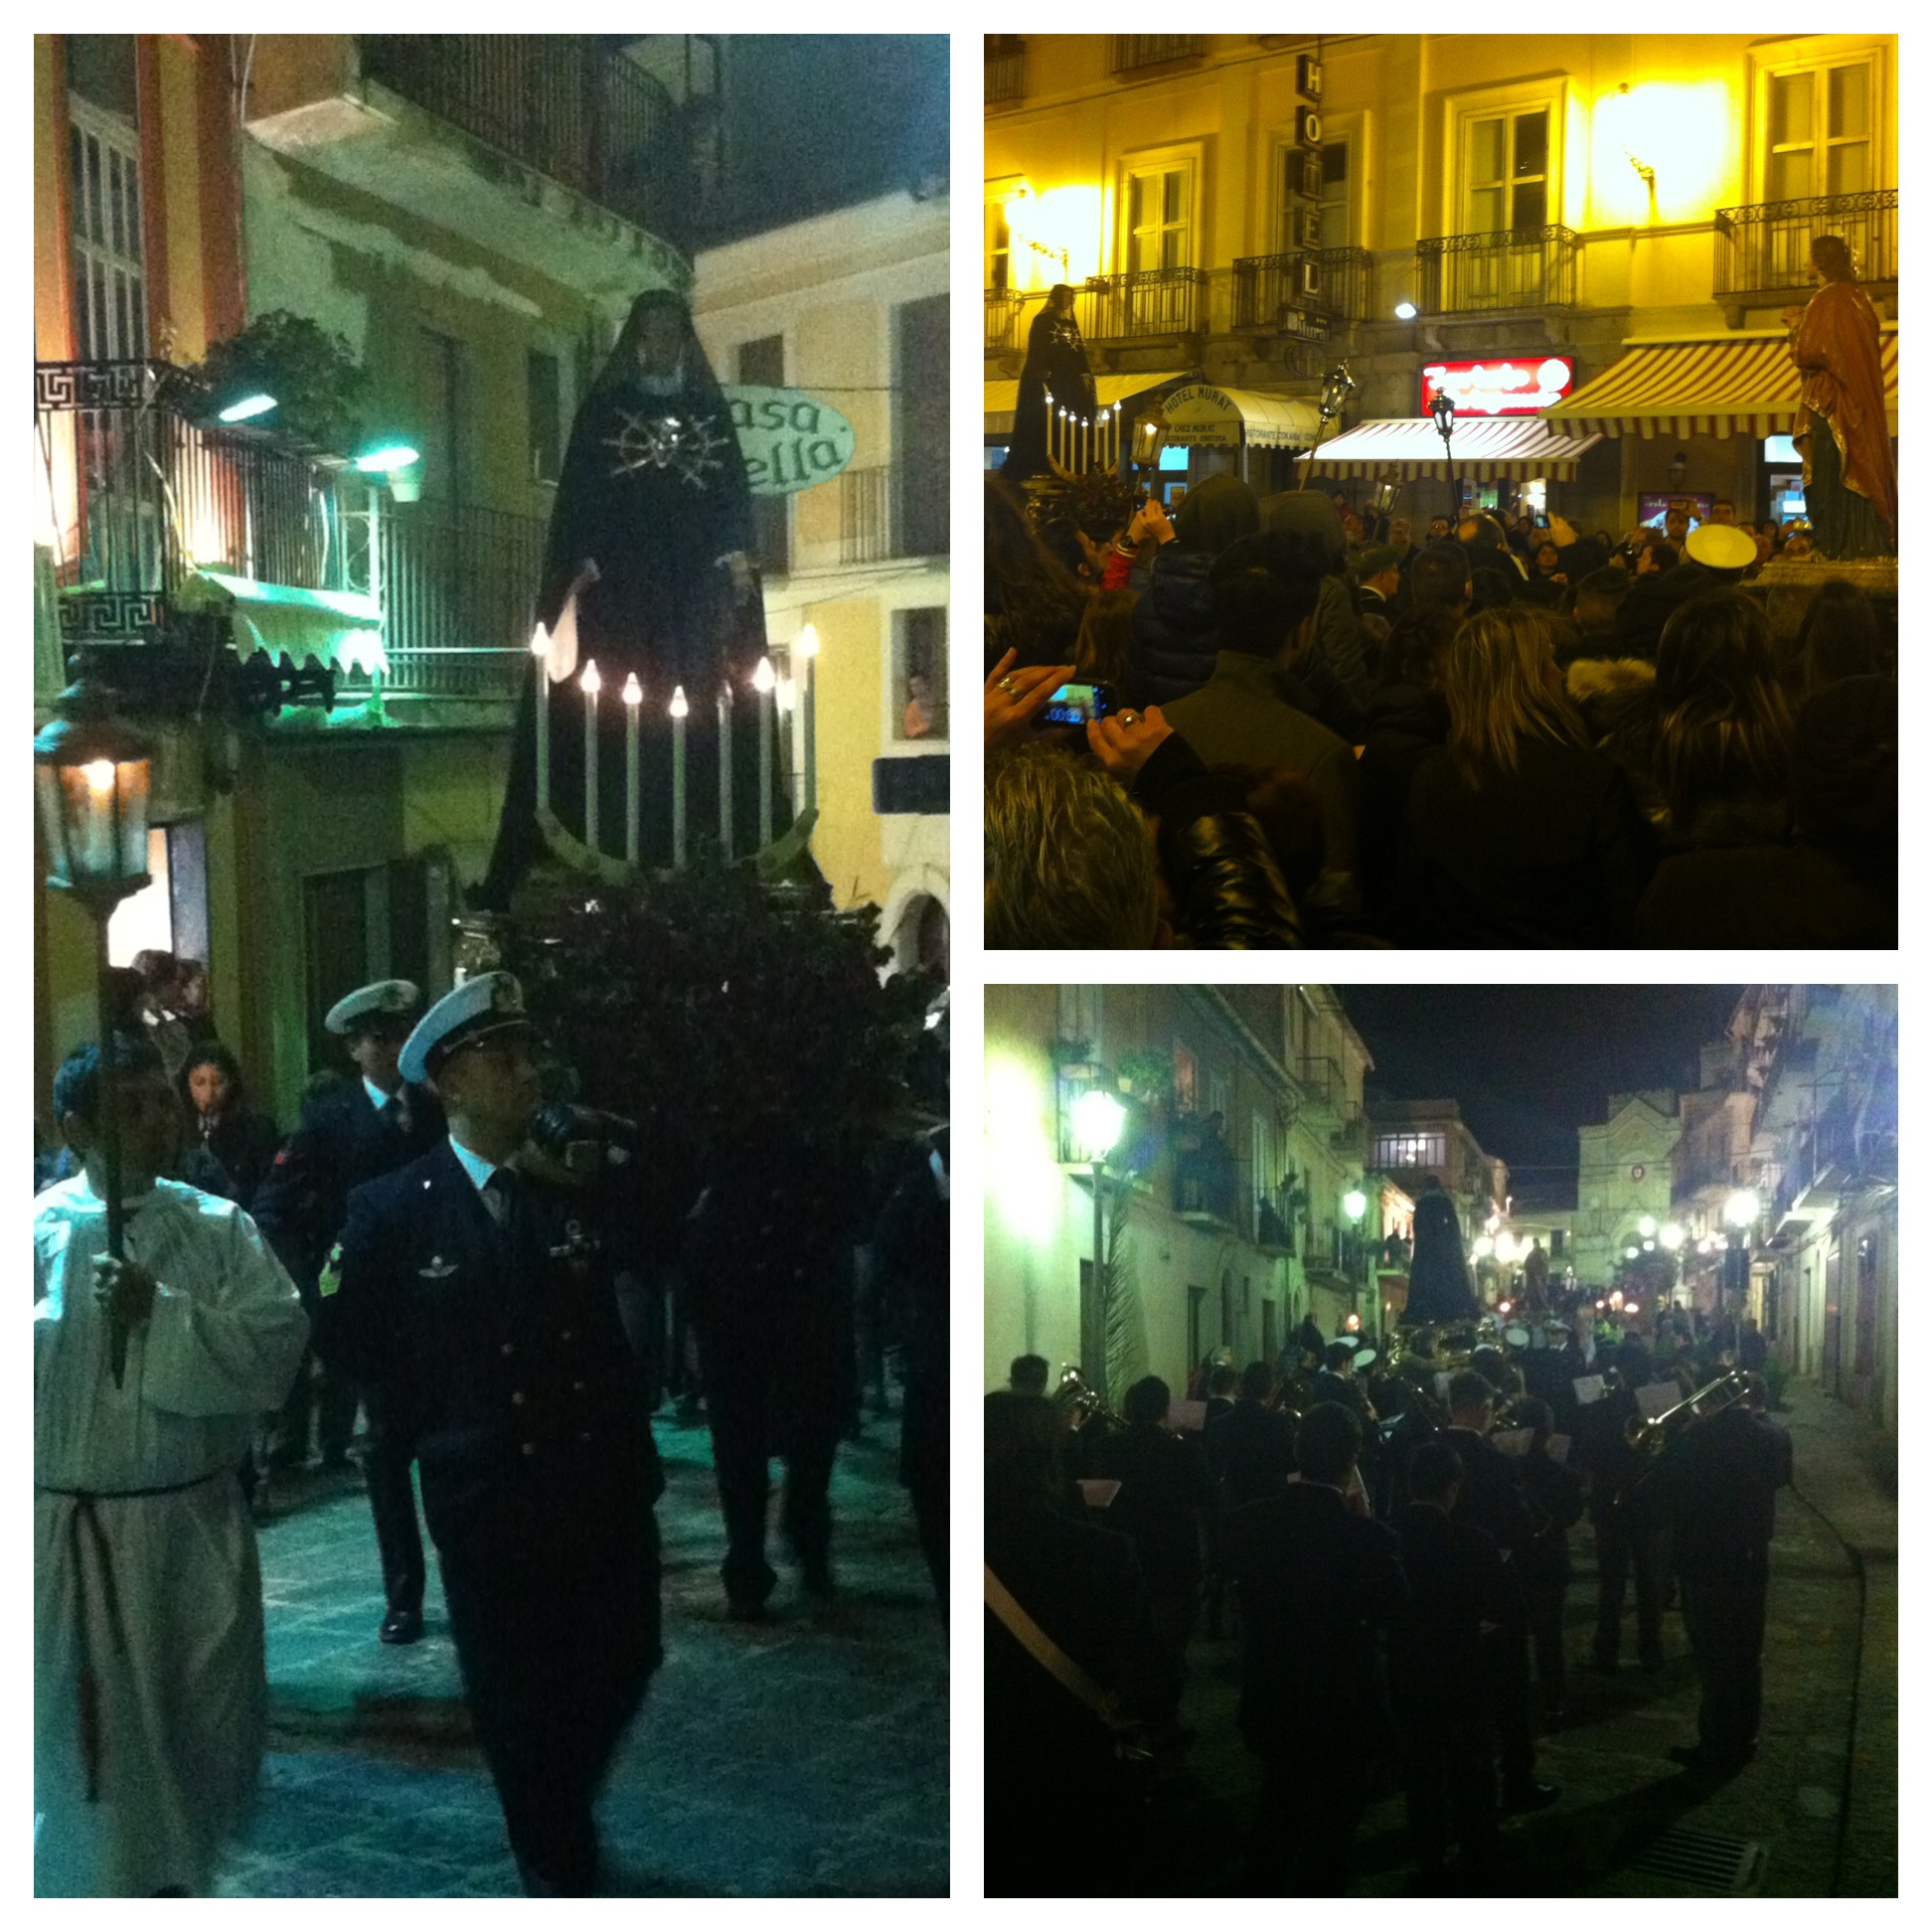 Procession in Pizzo